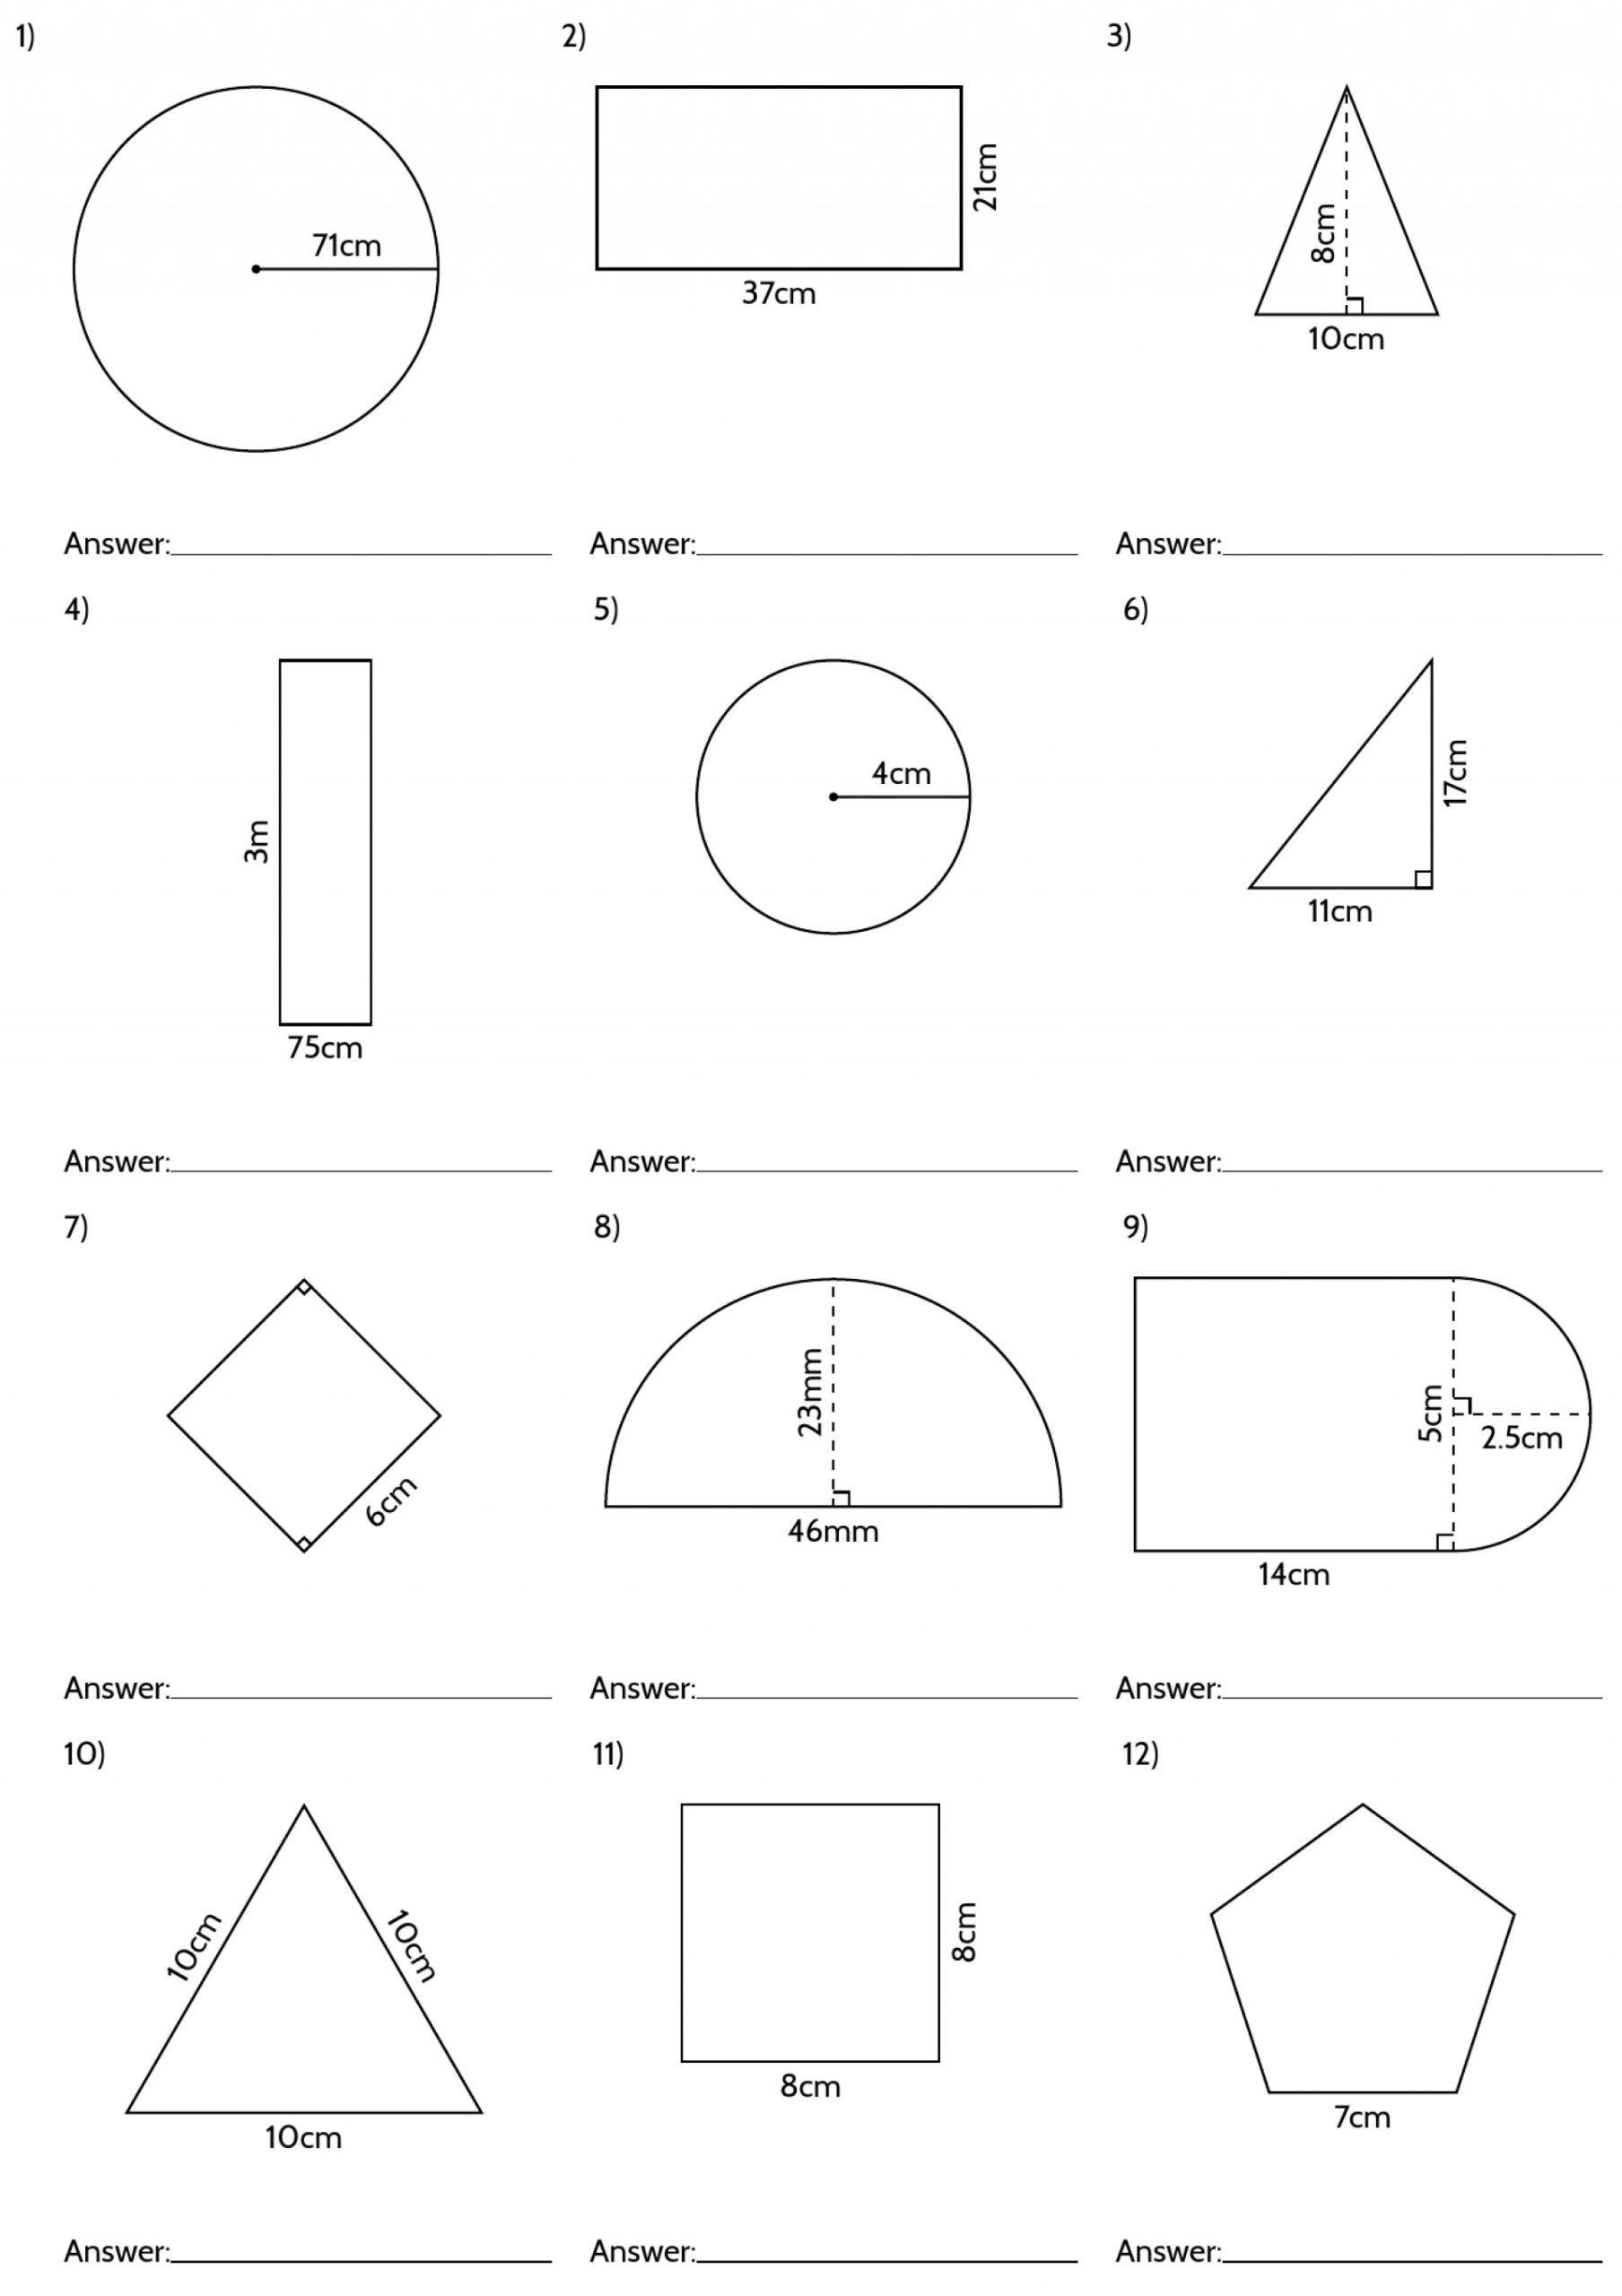 Geometry Worksheets 10th Grade Interactive Math Games Kuta Math Worksheets Geometry Object